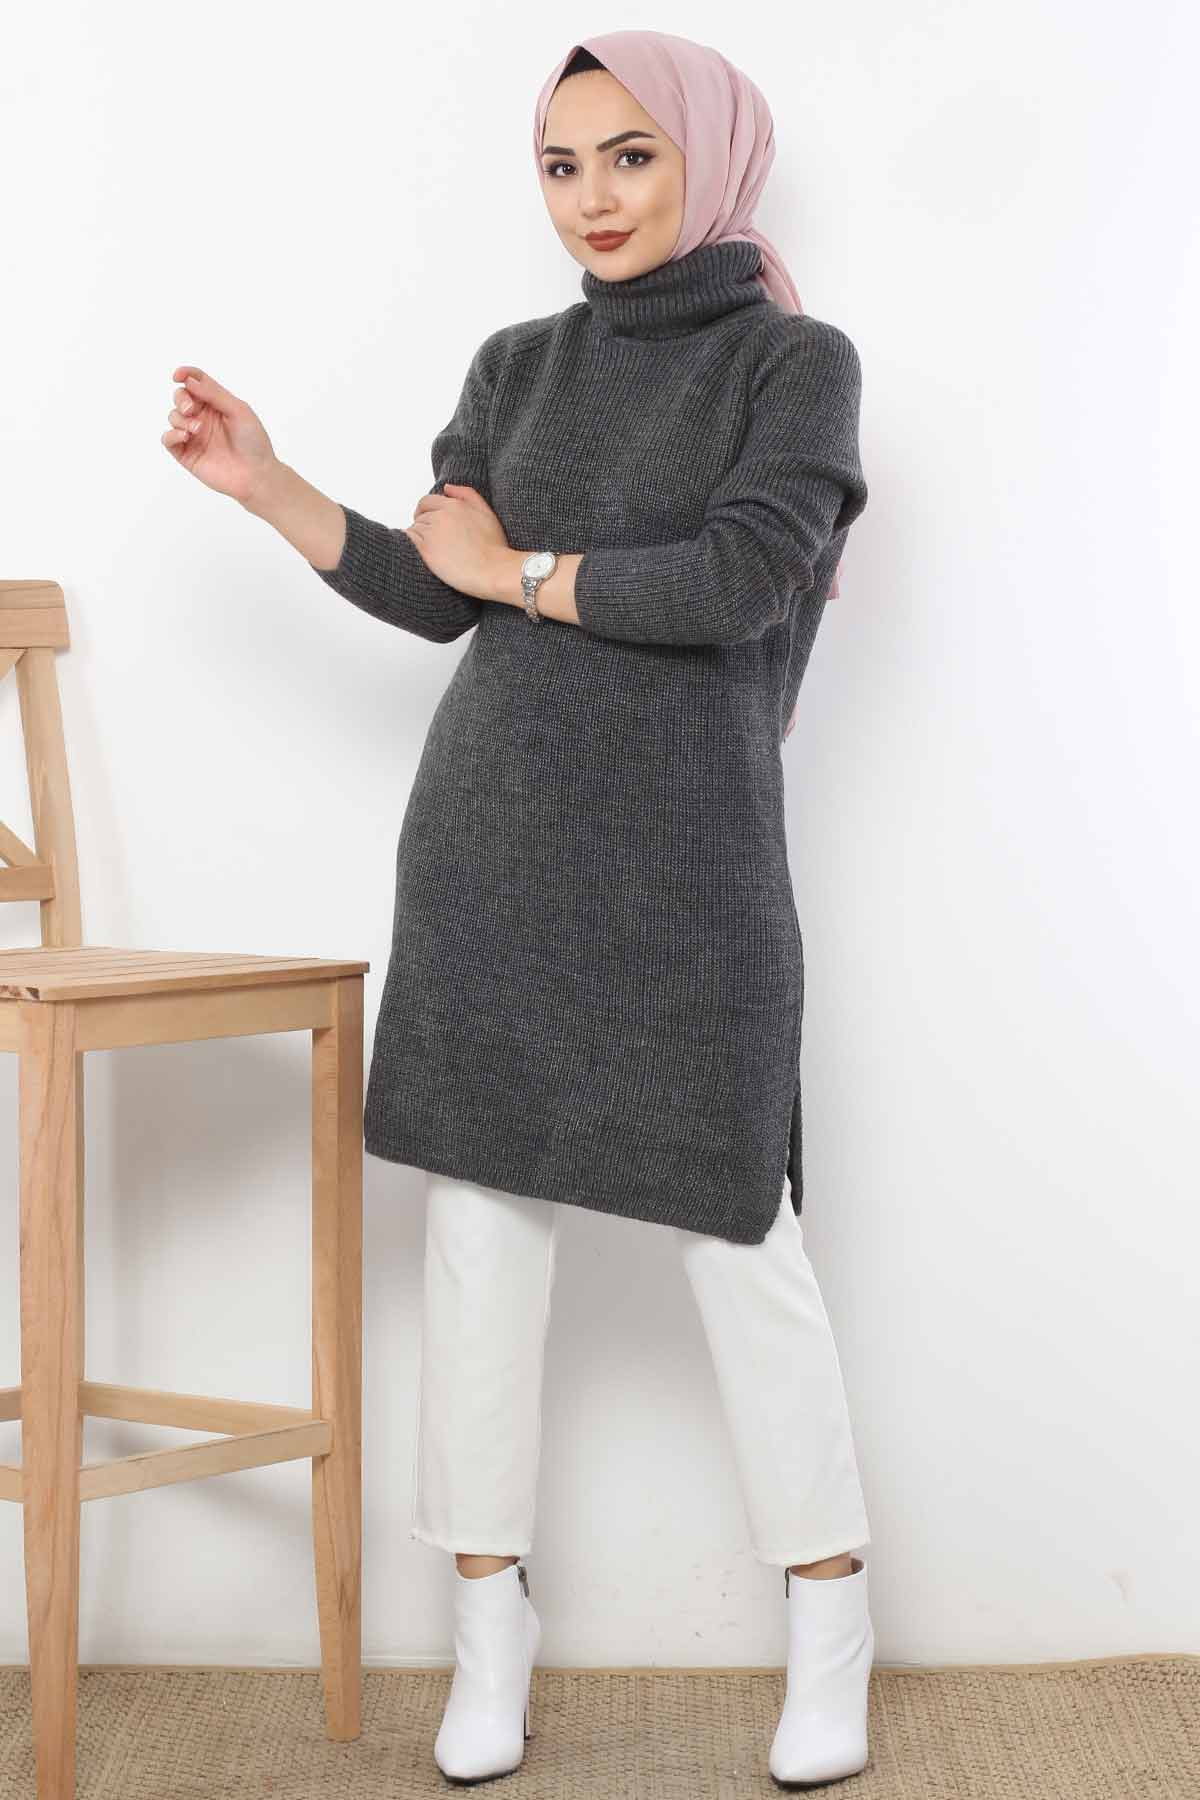 Throat Knitwear Tunic TSD6045 Charcoal color.